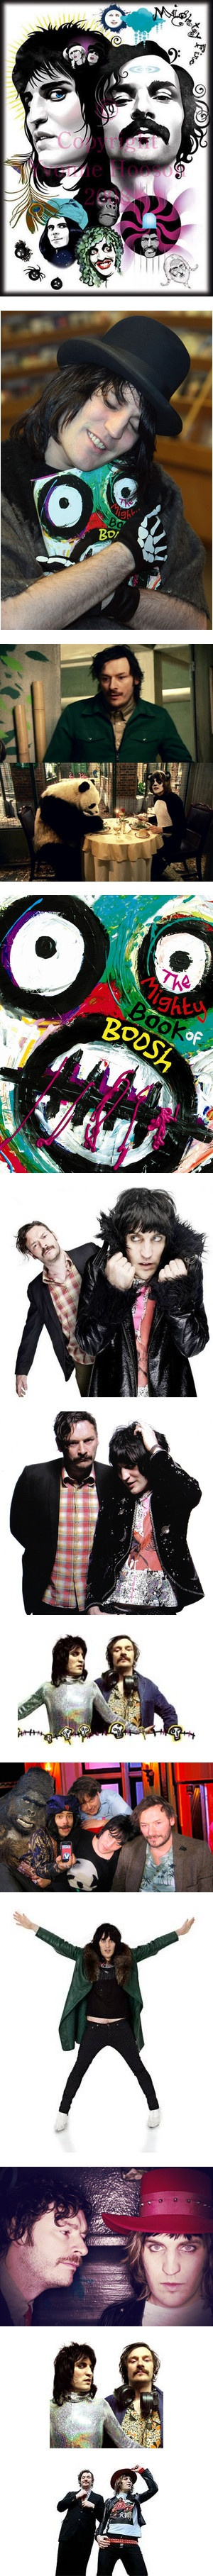 """""""The Mighty Boosh"""" by foreverbroken ❤ liked on Polyvore"""